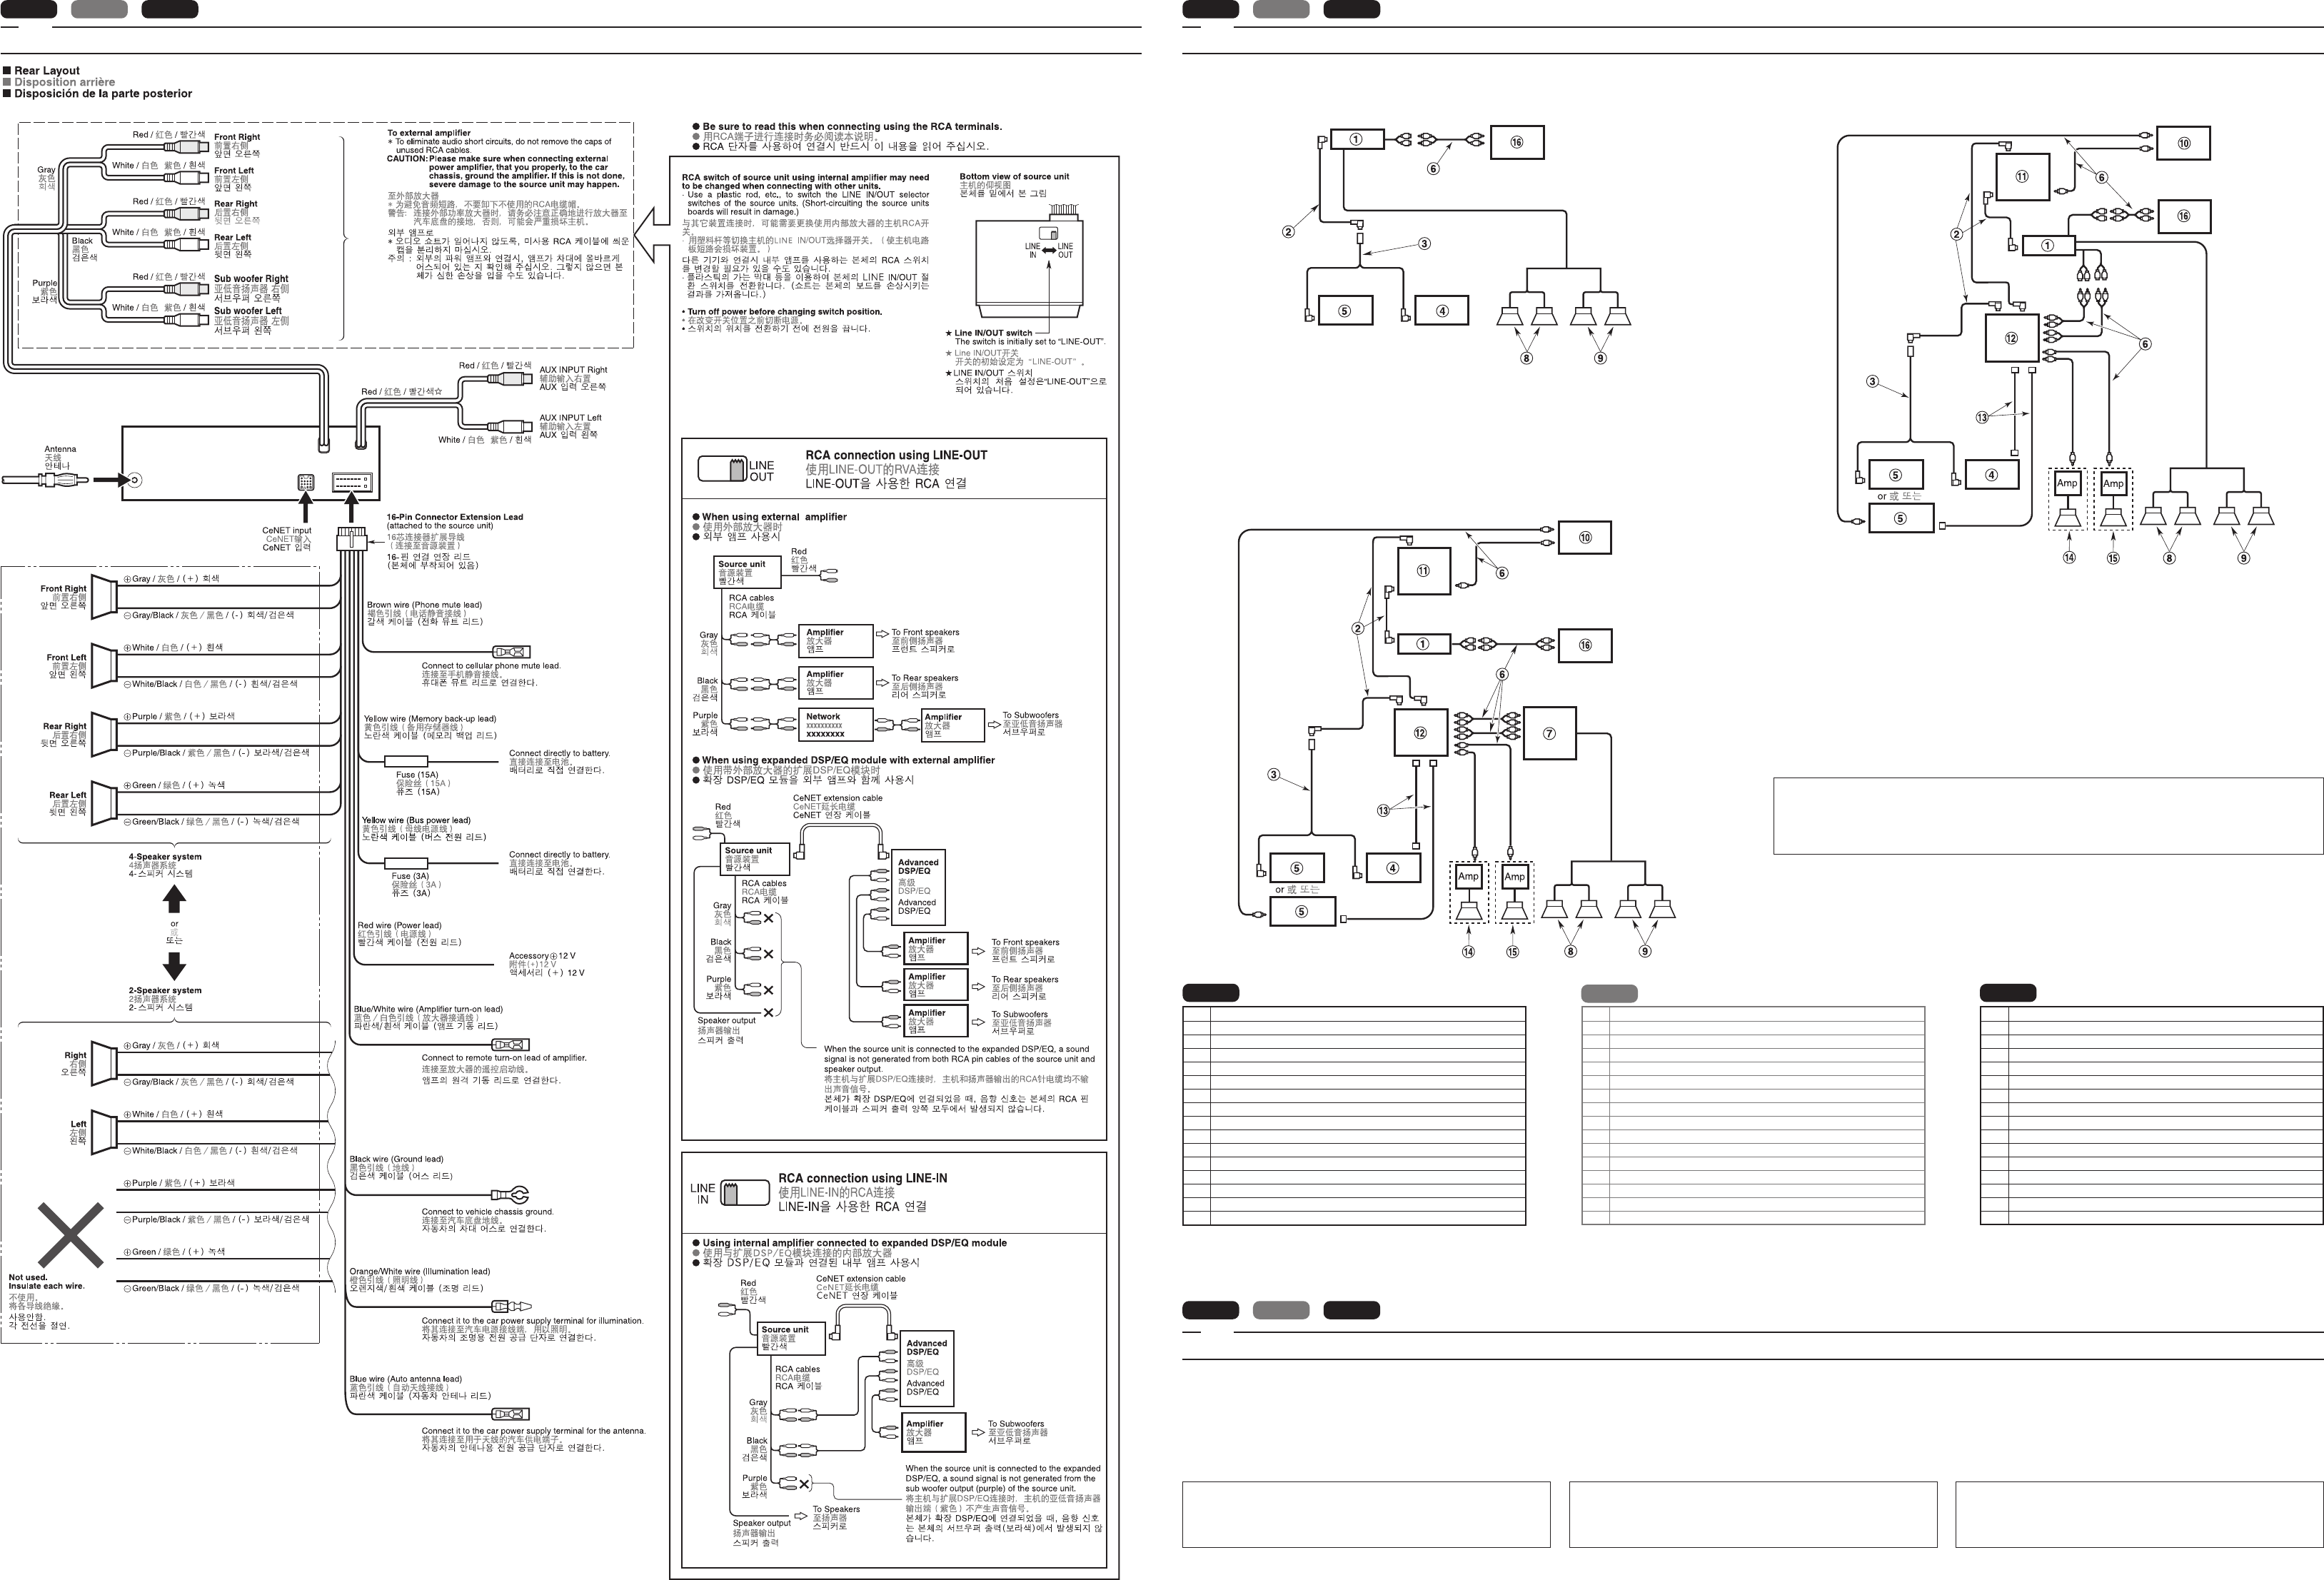 Page 2 of Clarion Car Stereo System DXZ835MP User Guide ... Rca Module Wiring Diagram on rca accessories, rca audio diagram, speaker diagram, rca plug wiring, rca jack wiring, rca pinout diagram, rca jack connector diagram, rca remote programming, rca schematics, rca service manual,